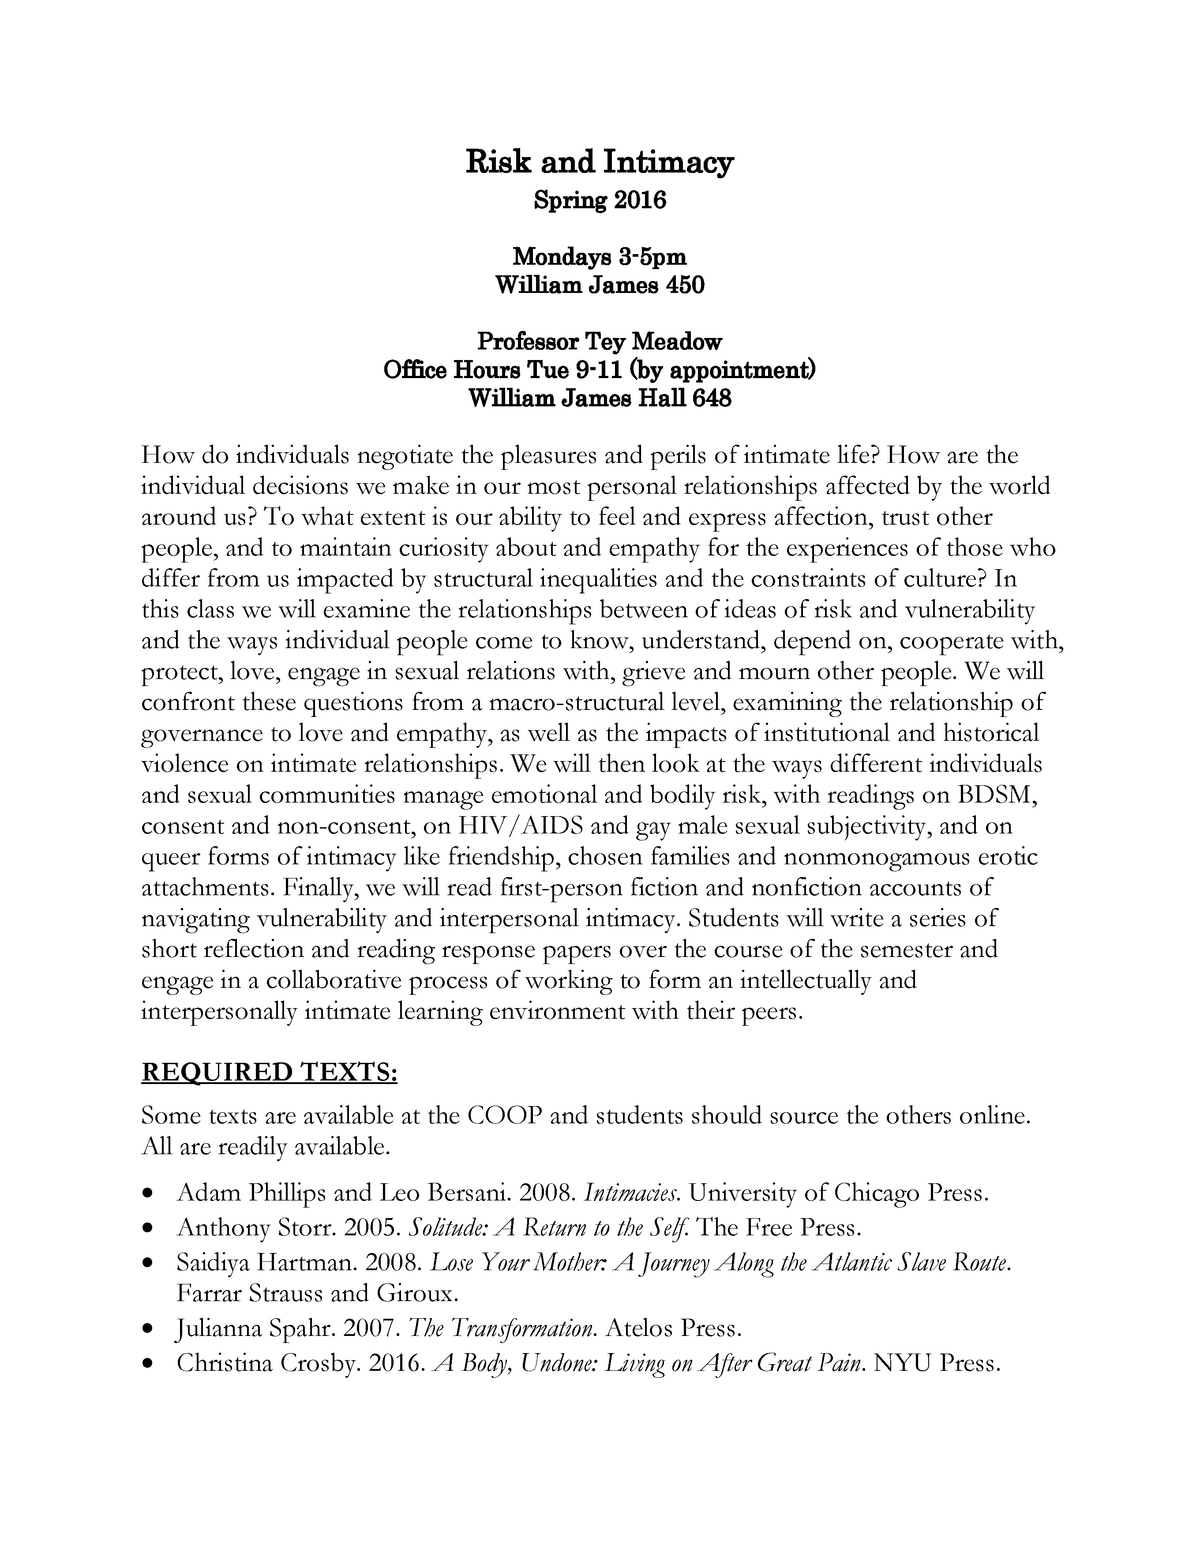 Risk and Intimacy 2016 - Syllabus - WGS 1470: Risk and Intimacy